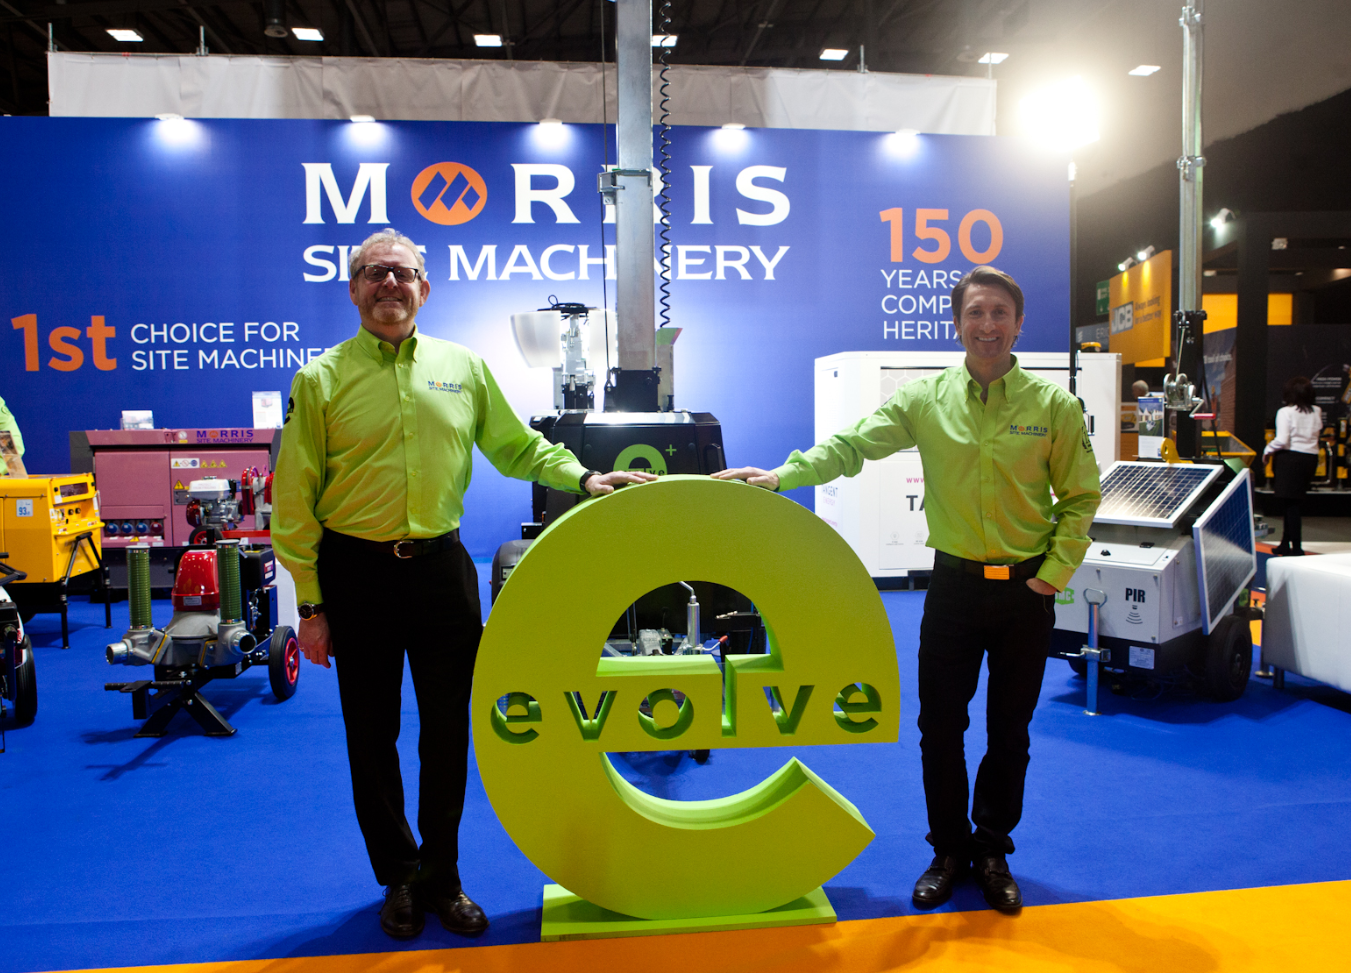 Morris Site Machinery means business on international stage